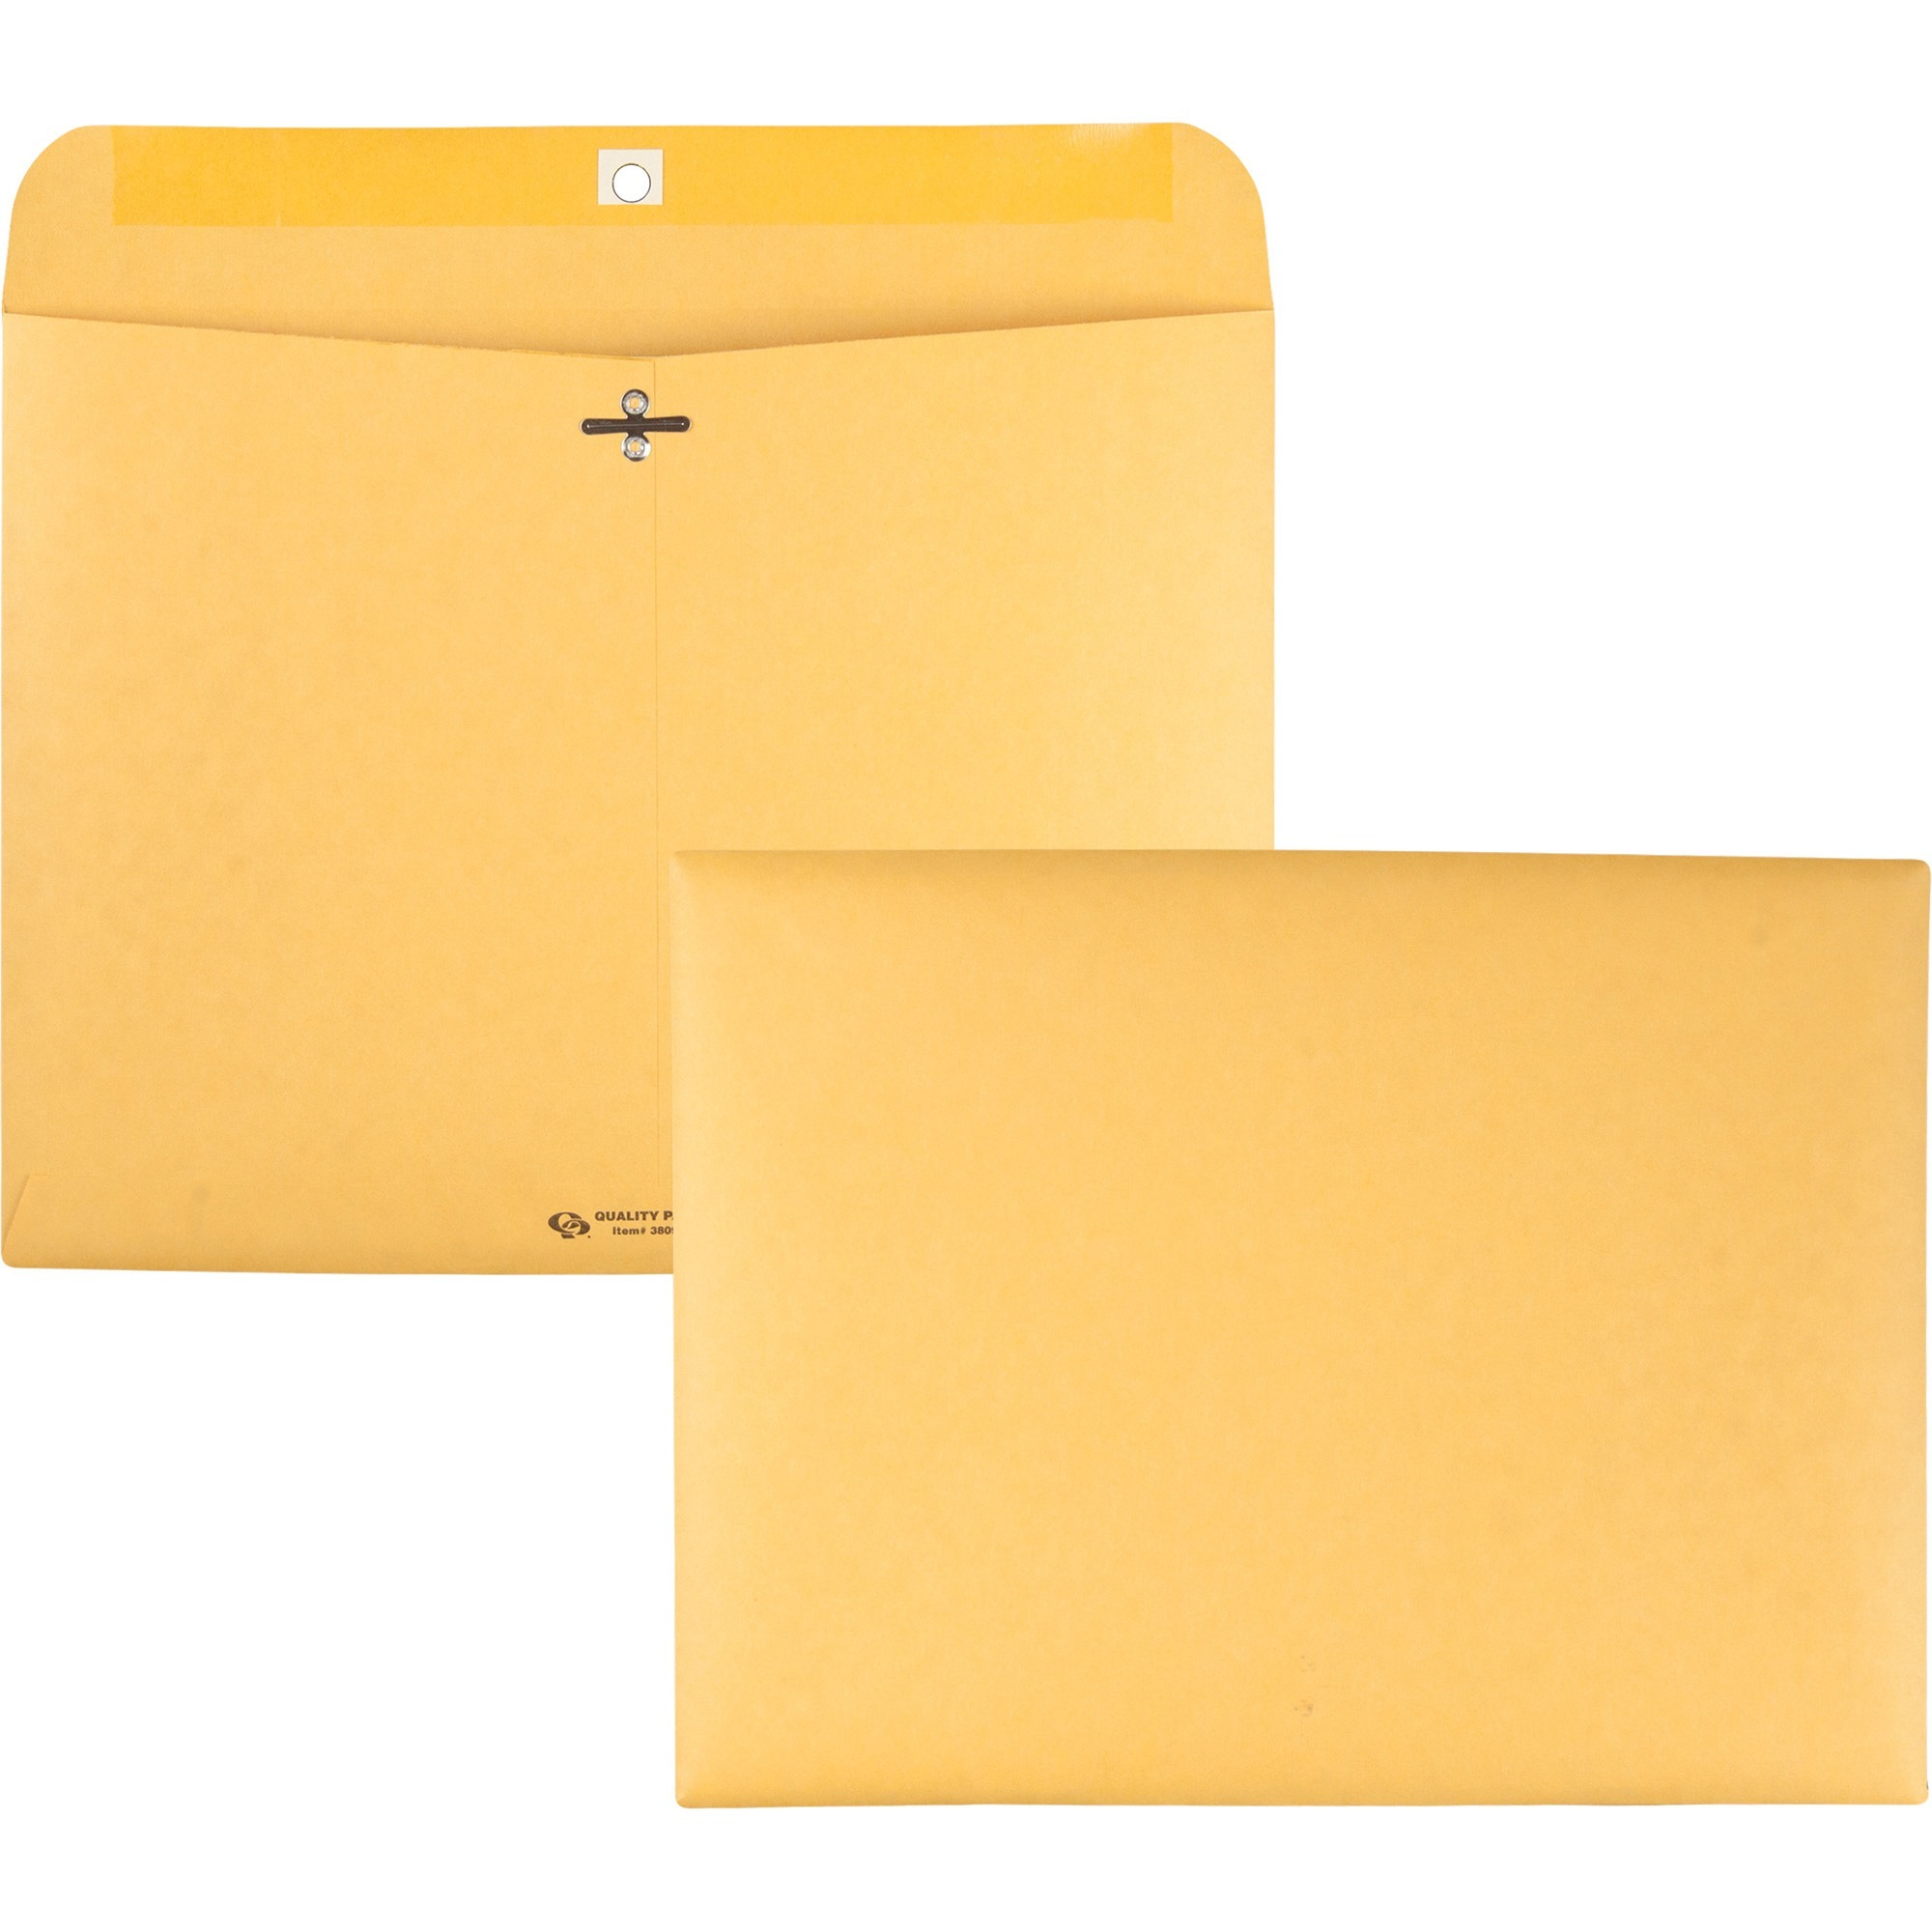 Redi File Clasp Envelope, 12 x 9, Brown Kraft, 100/Box